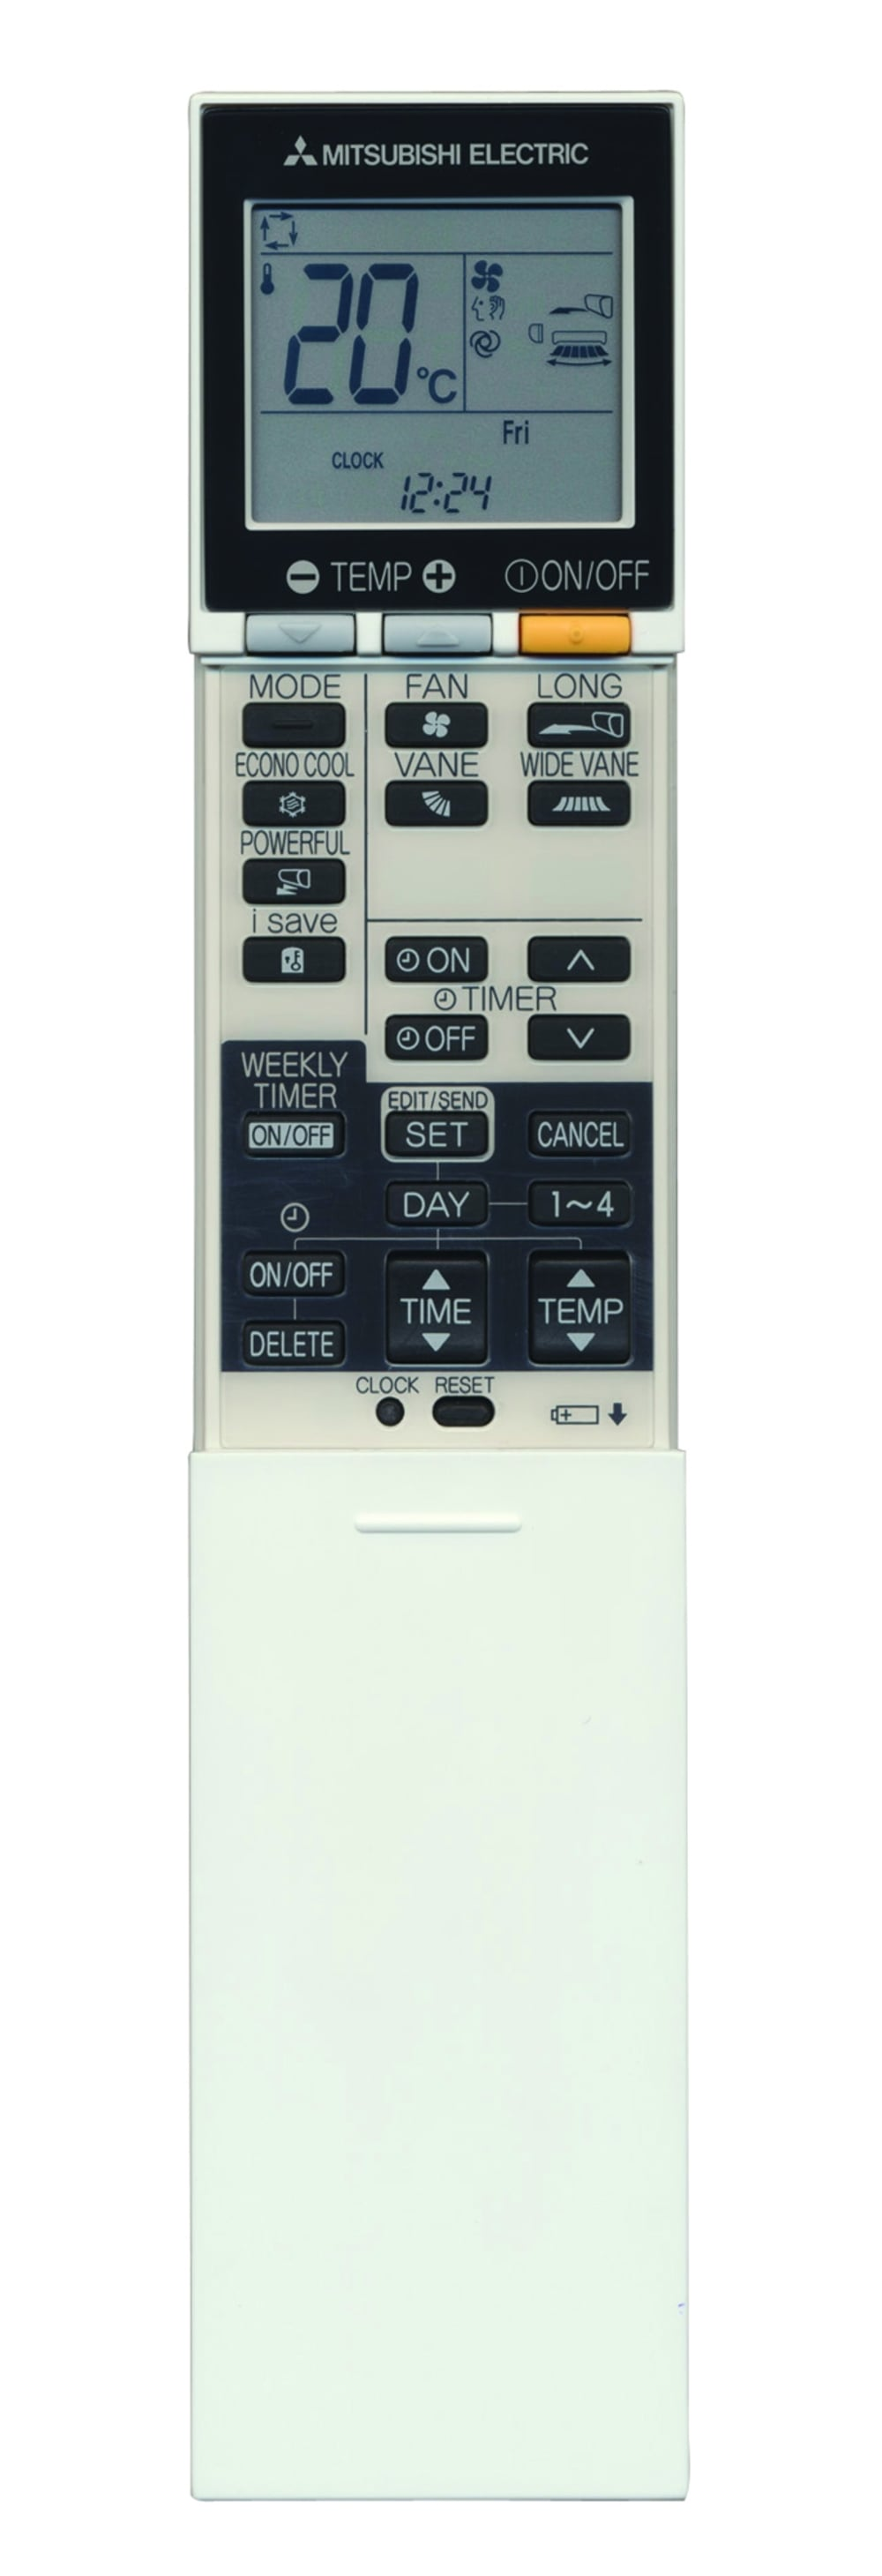 mitsubishi inverter remote instructions